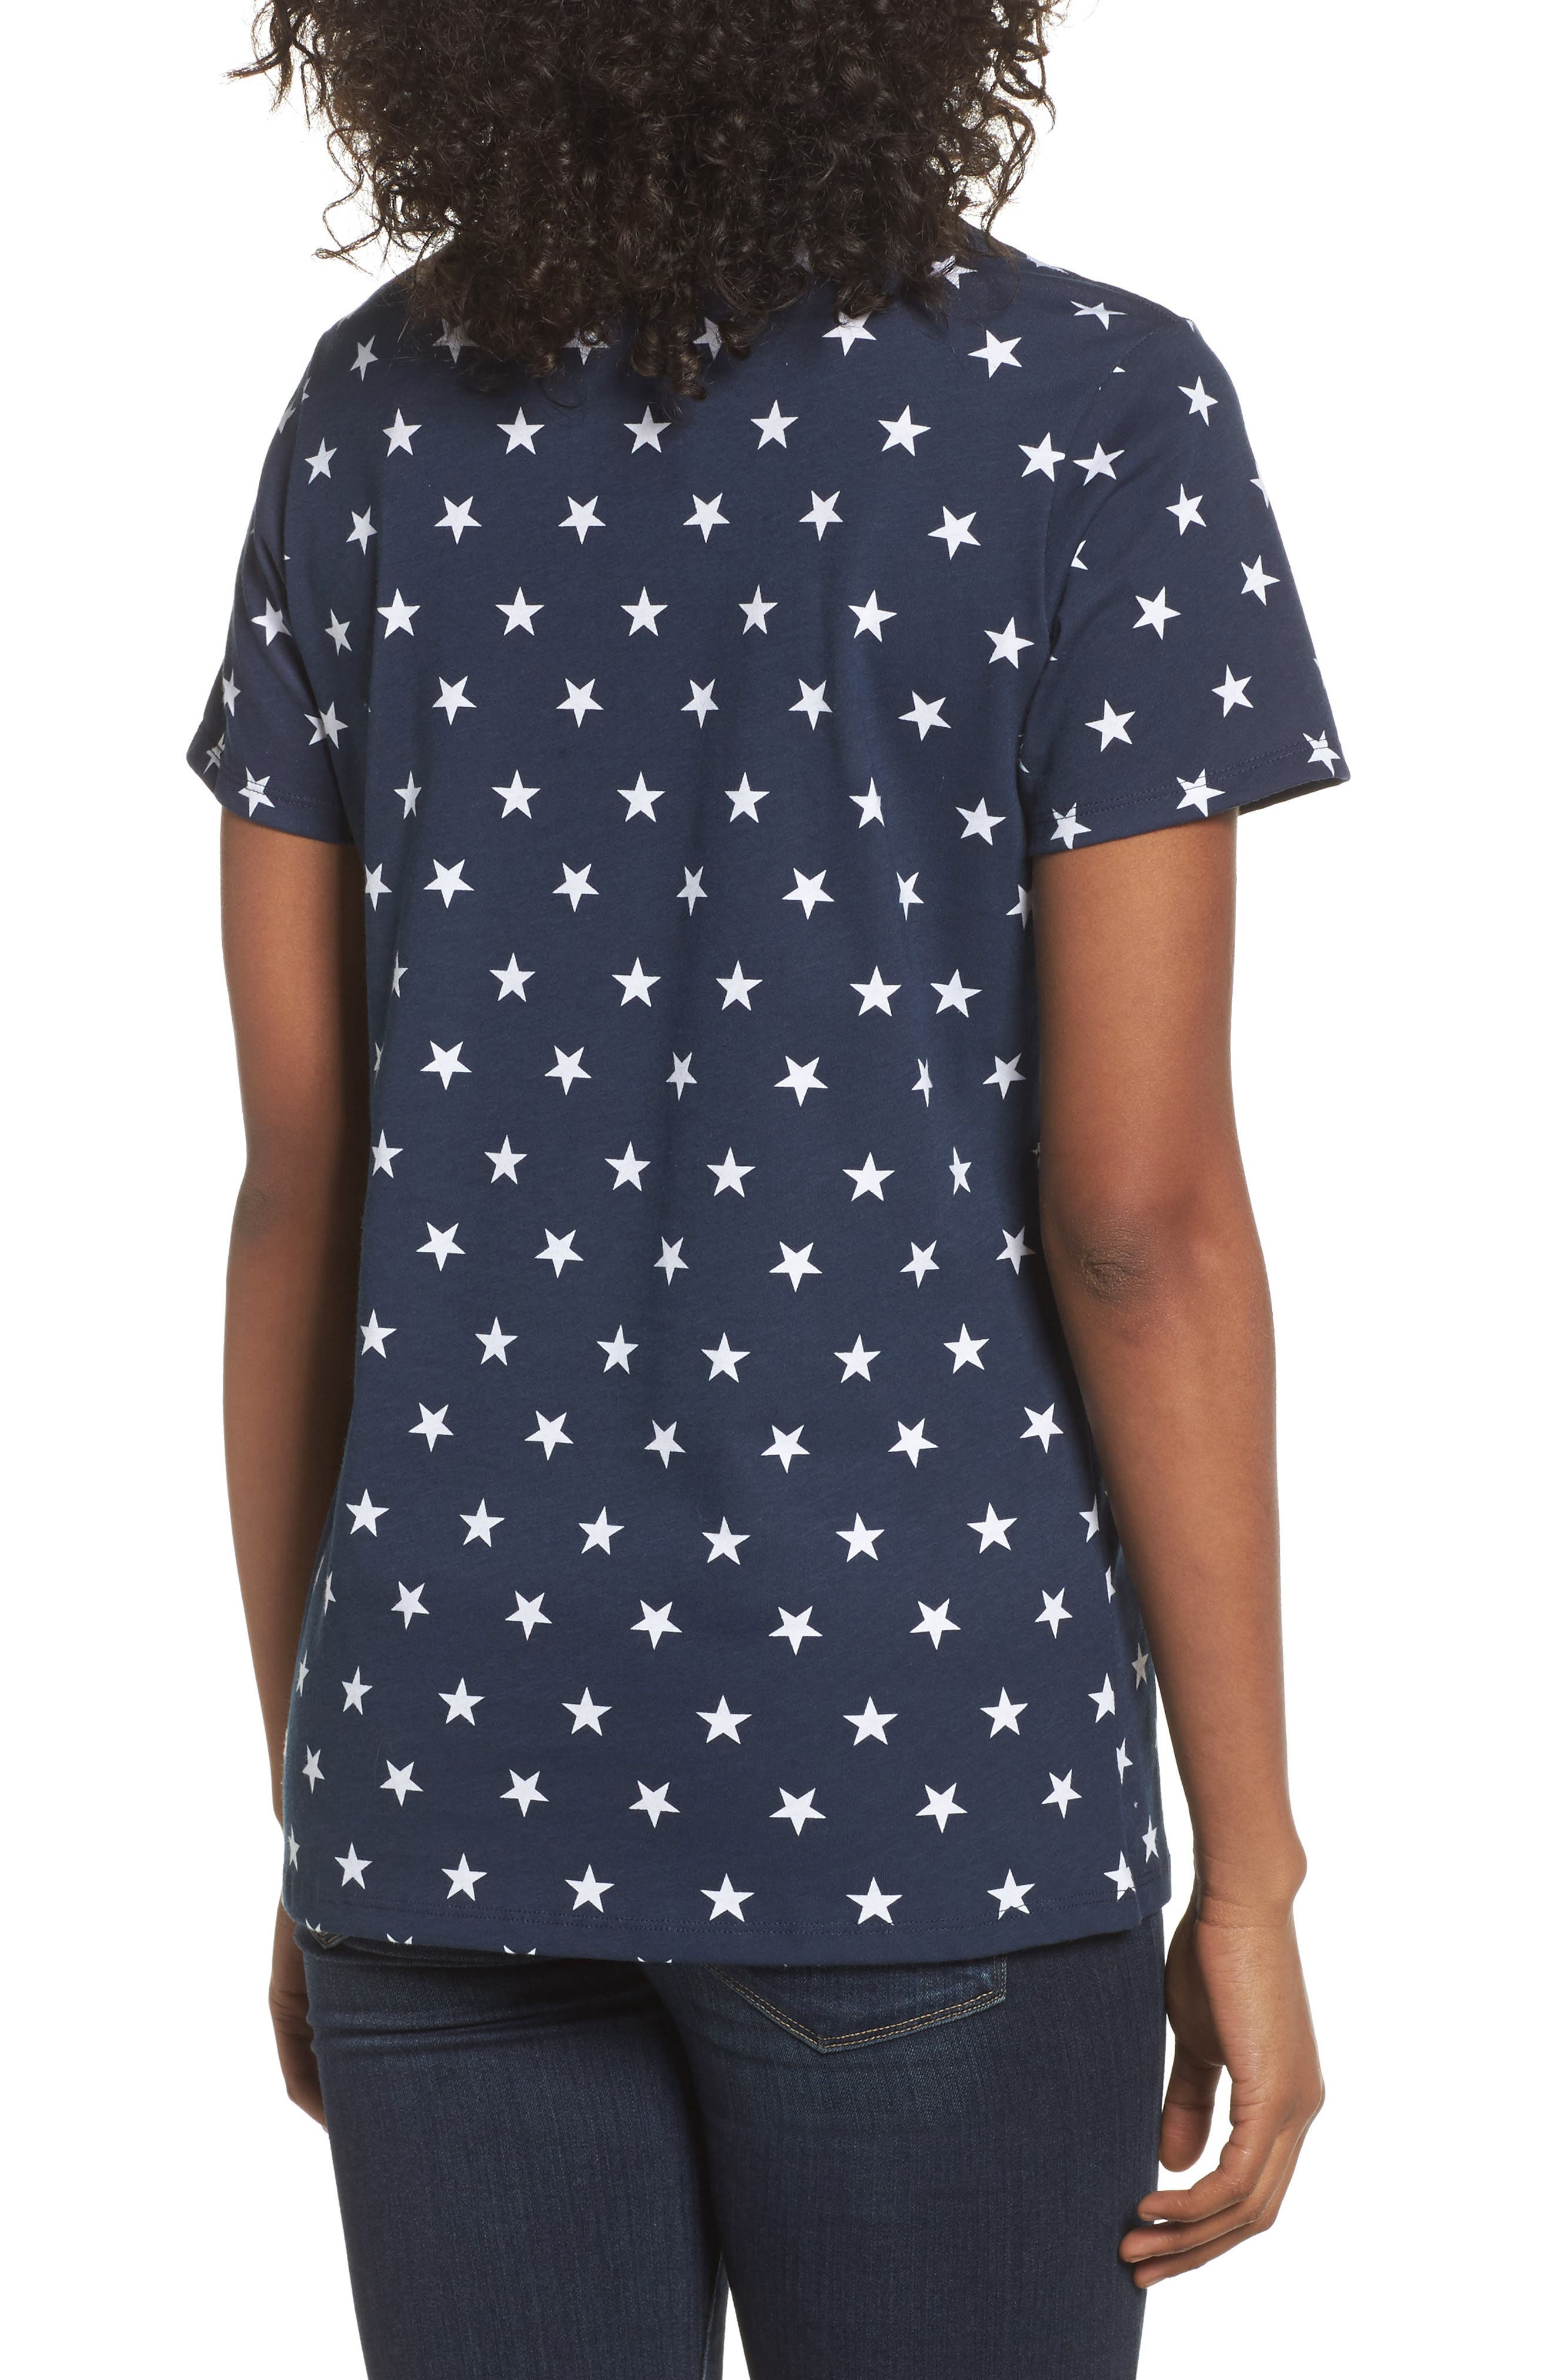 International Collection Tee,                             Alternate thumbnail 2, color,                             COSMIC BLUE STAR PRINT